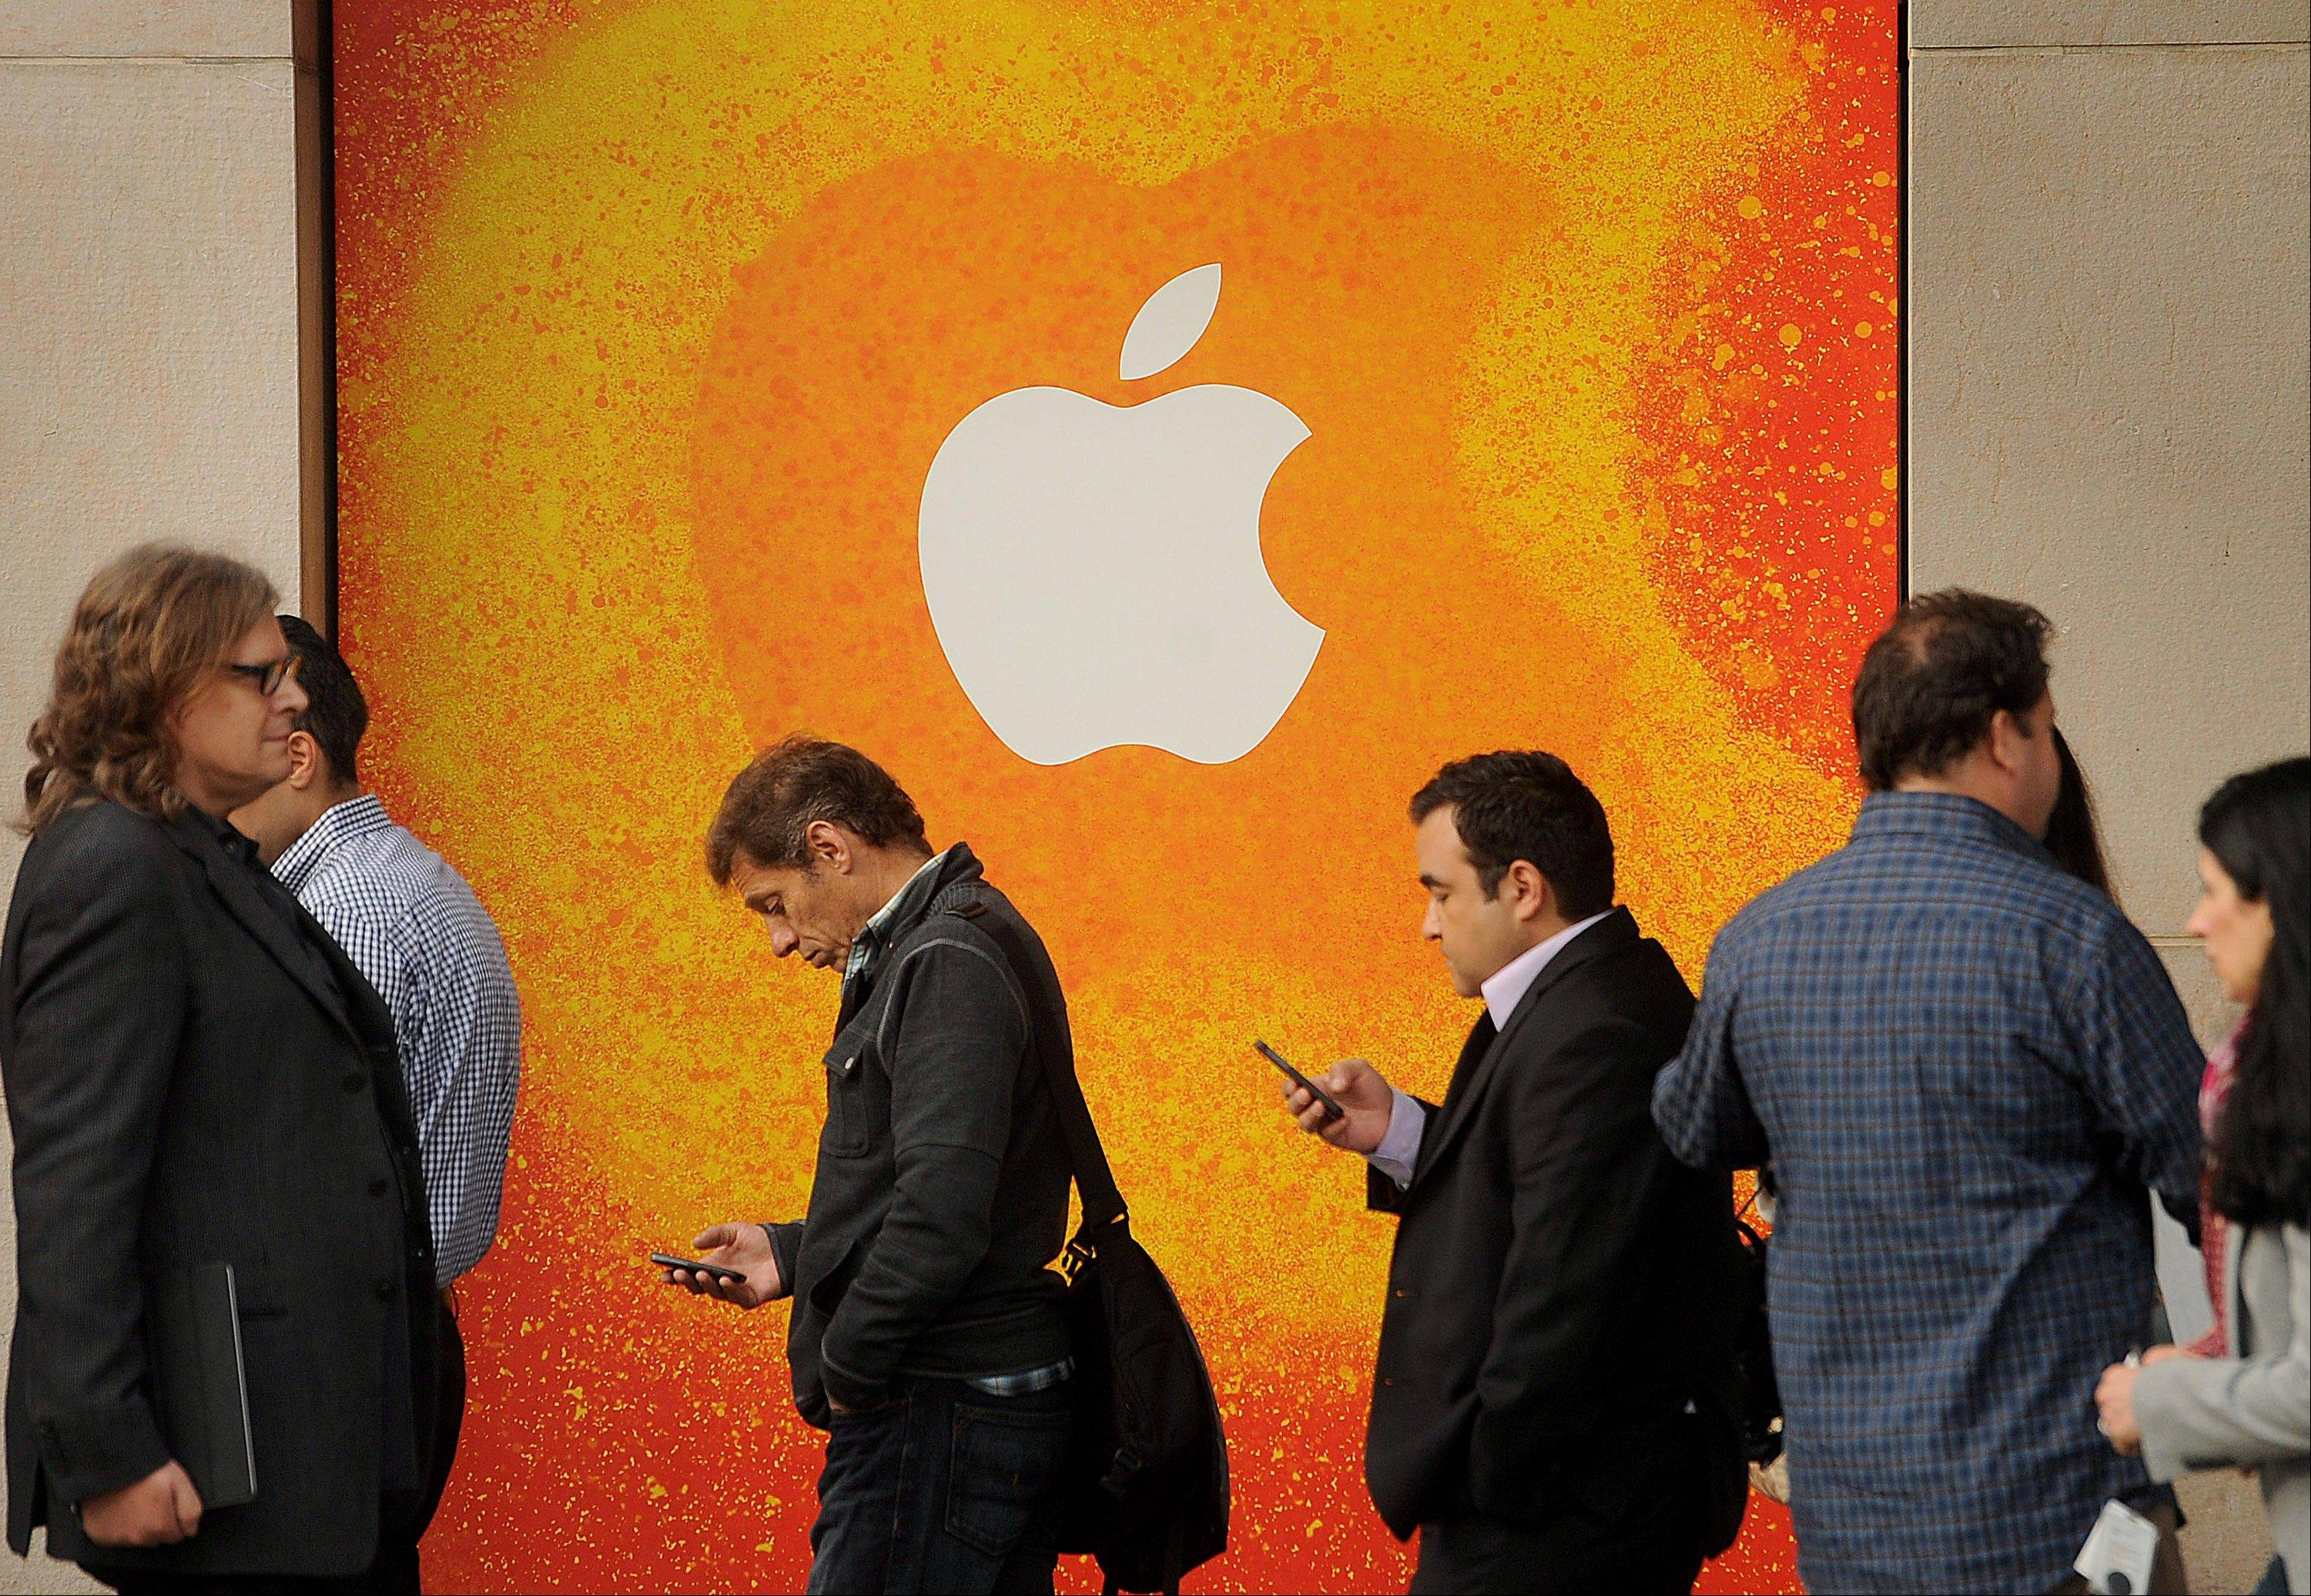 Apple Inc. and HTC Corp. have settled all global lawsuits and signed a 10-year licensing agreement, ending a dispute that threatened their shipments of mobile devices.